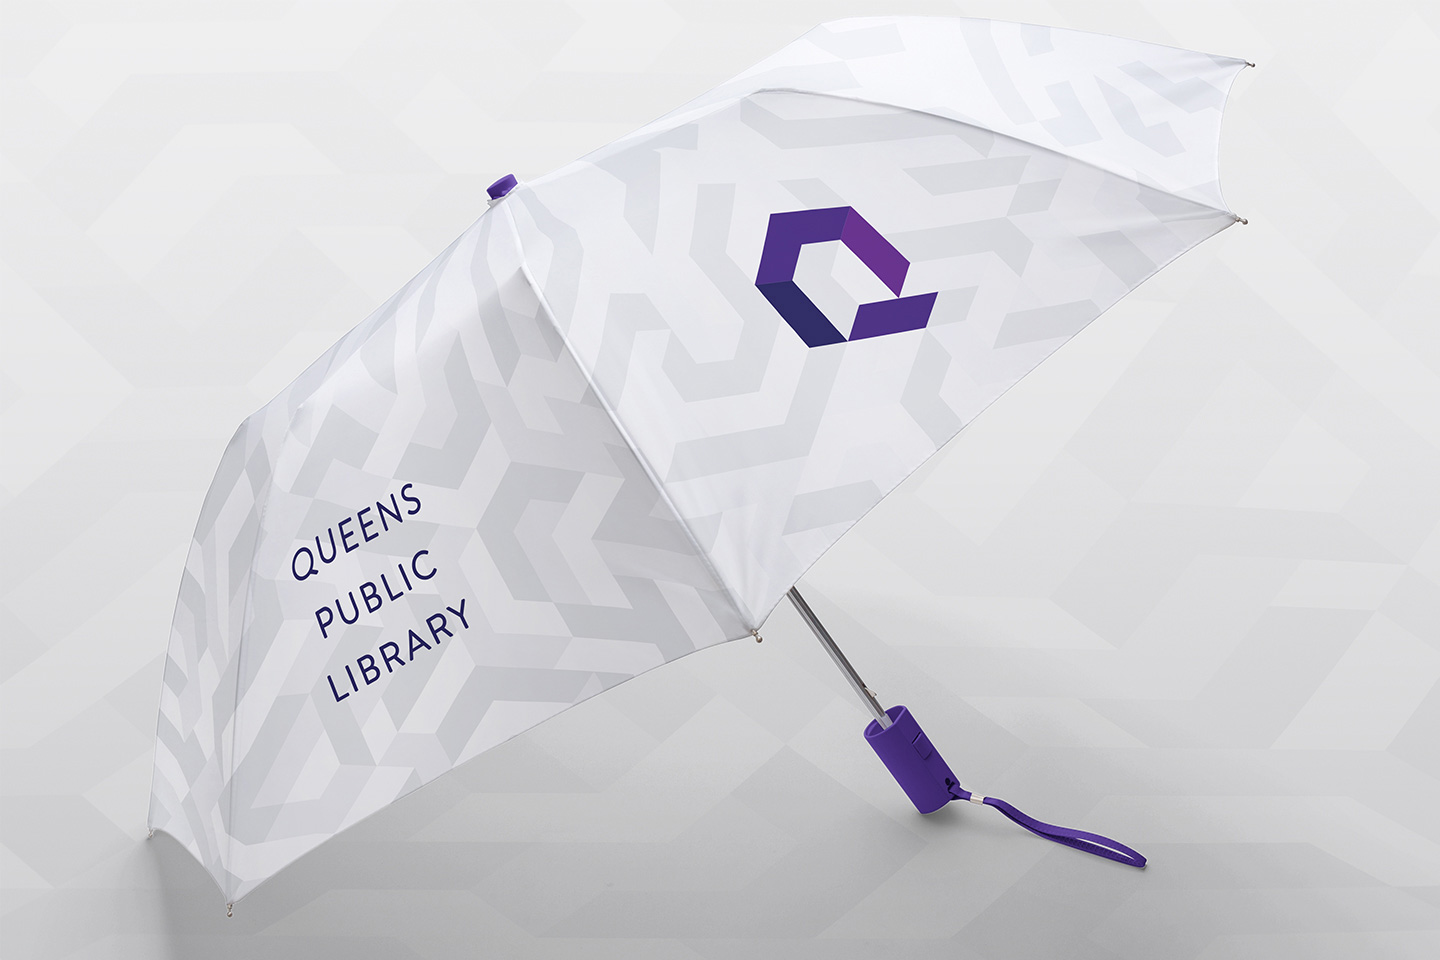 New Logo and Identity for Queens Public Library by Doublespace